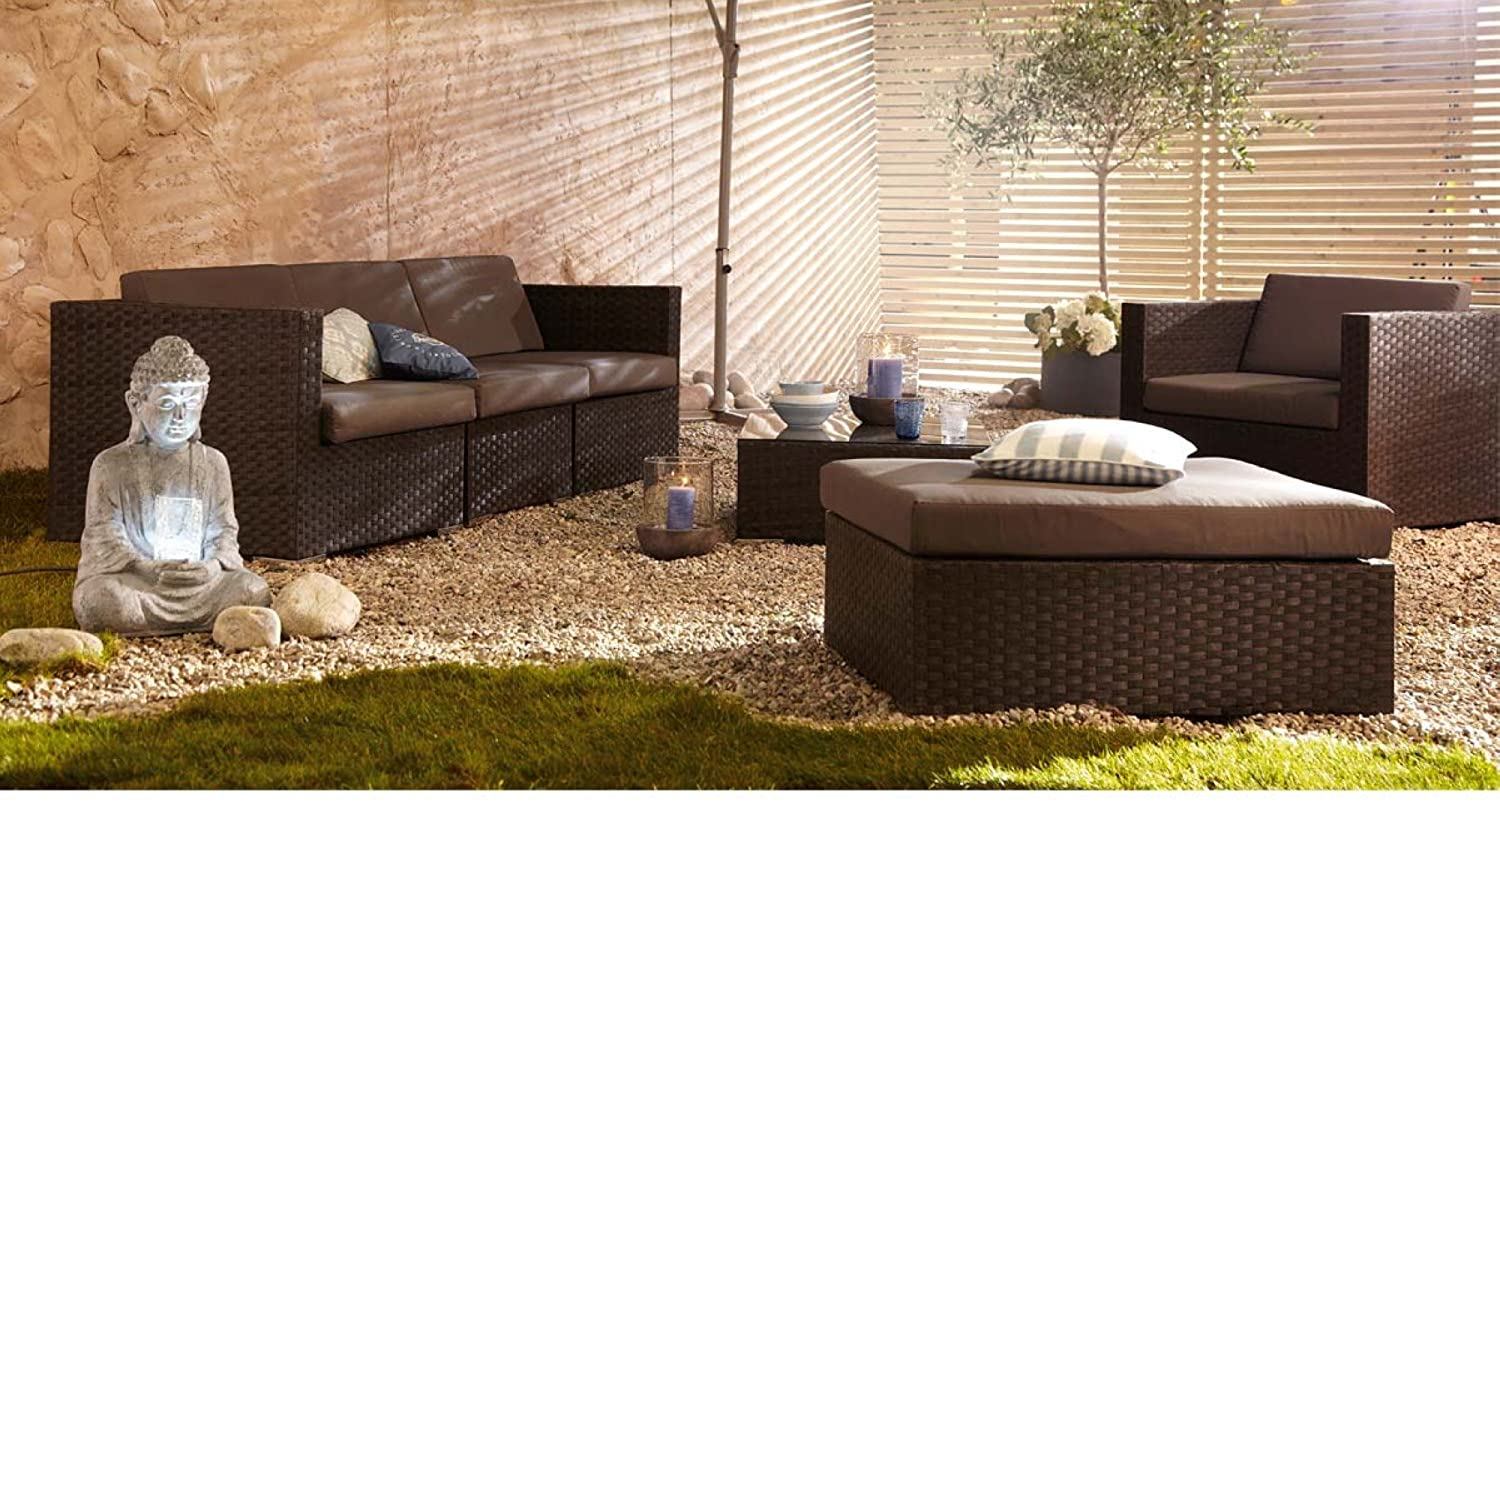 gartenm bel set aus kunstrattan mit auflagen 6 teilig braun g nstig. Black Bedroom Furniture Sets. Home Design Ideas